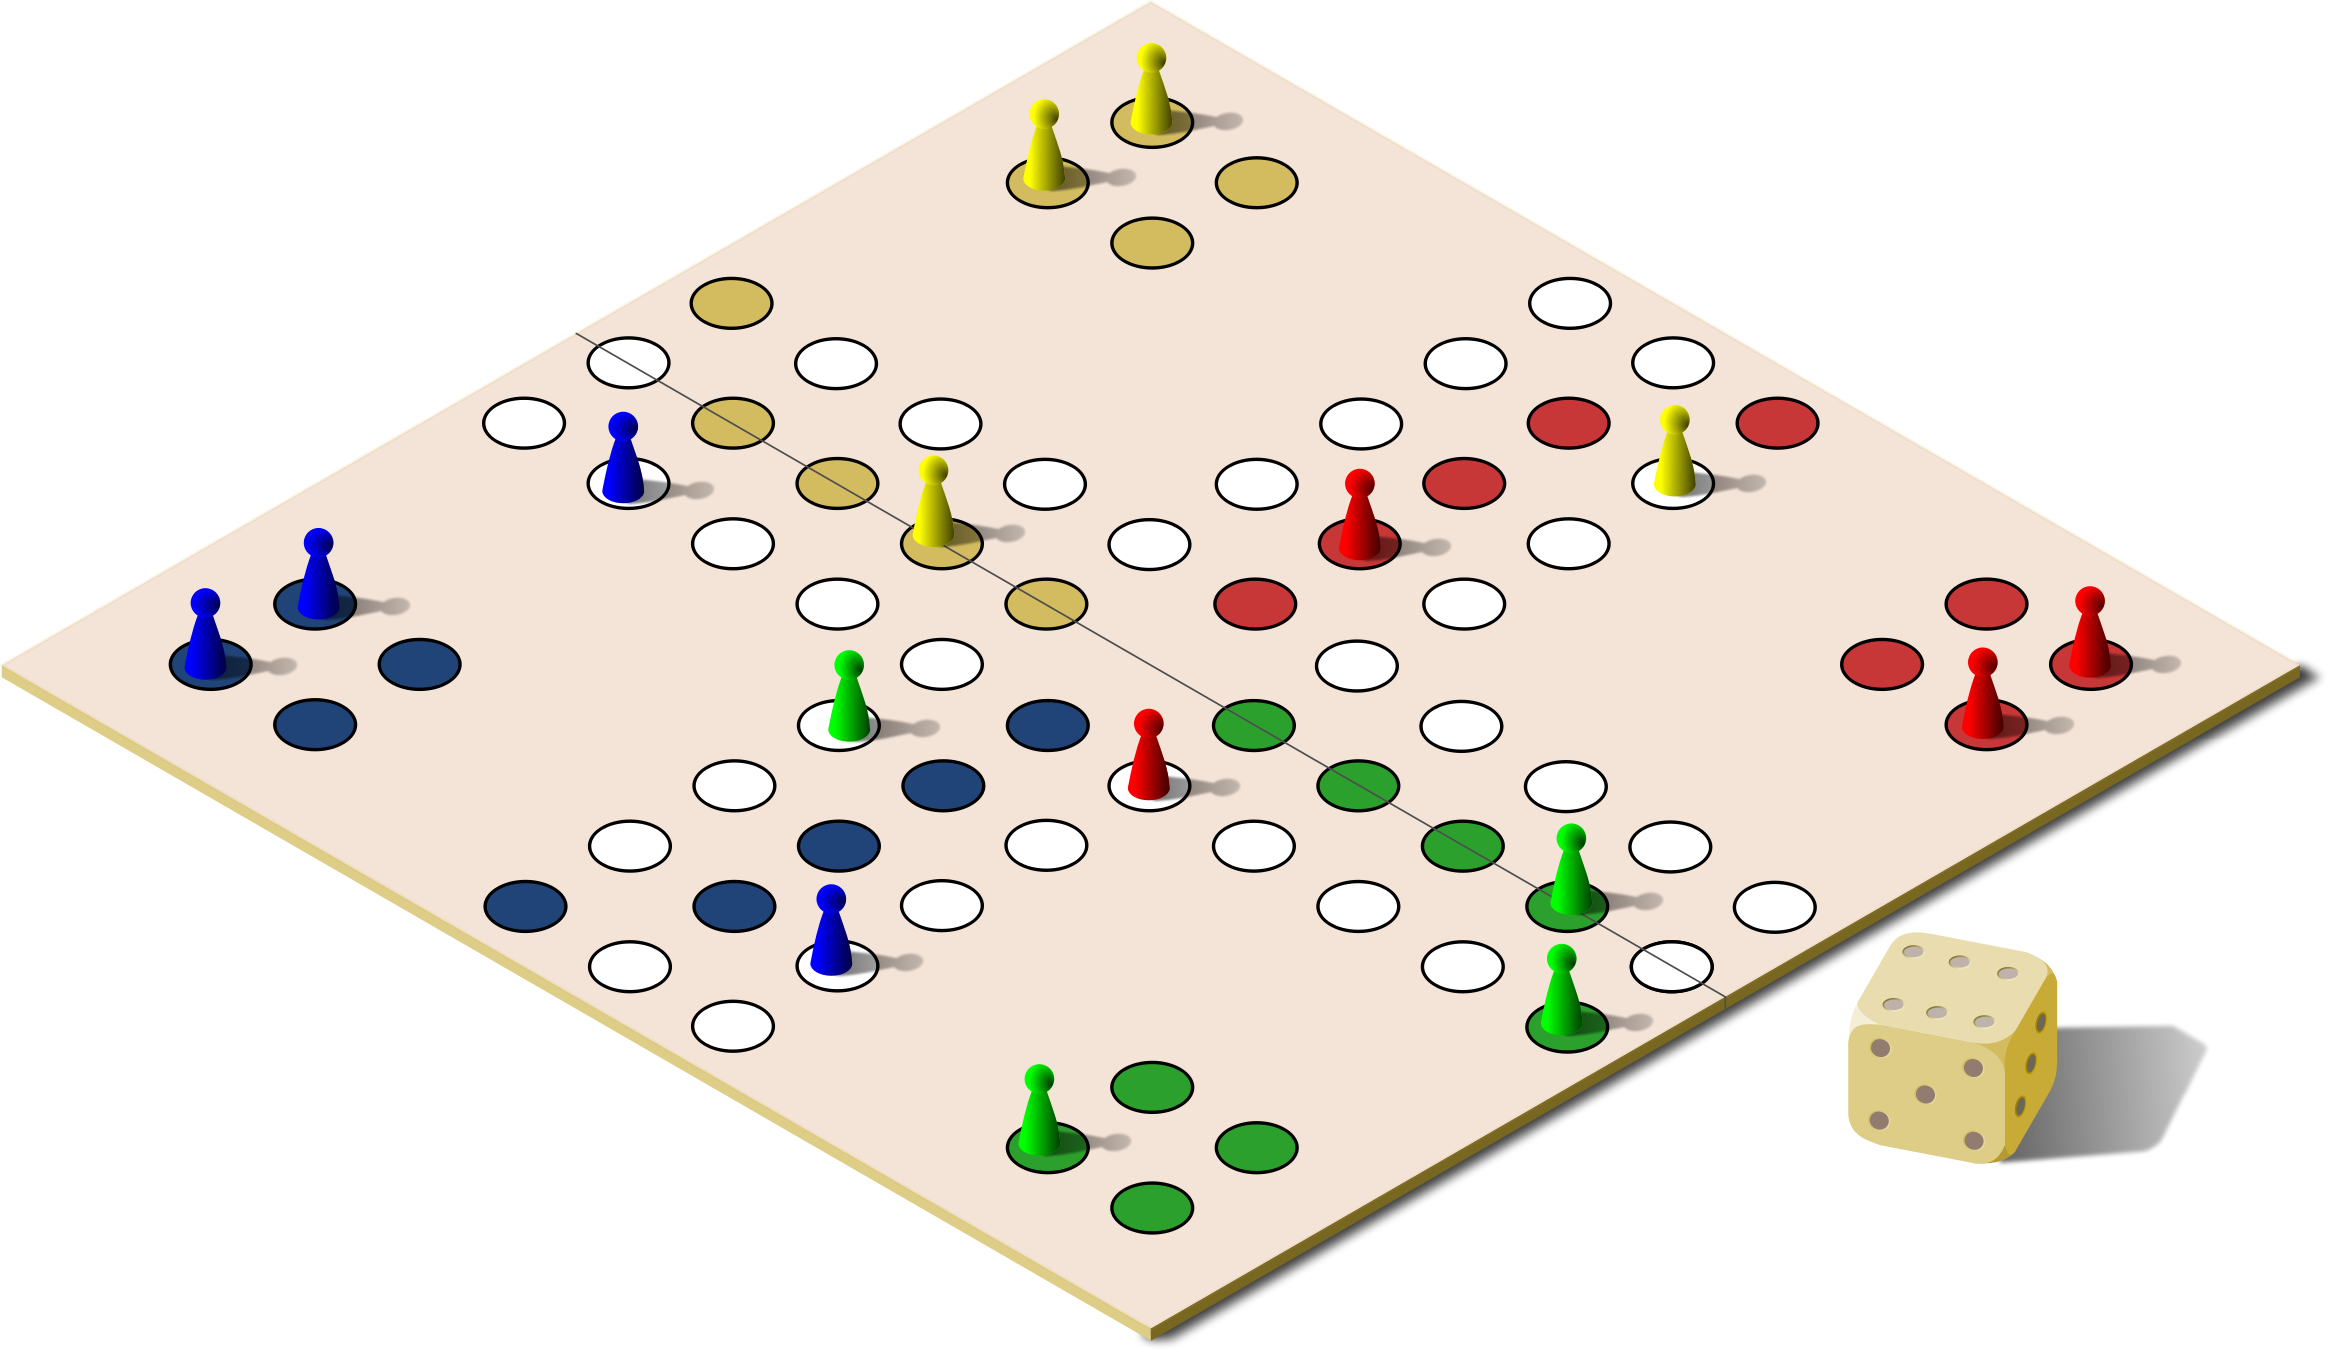 Game clipart board game. Ludo big image png